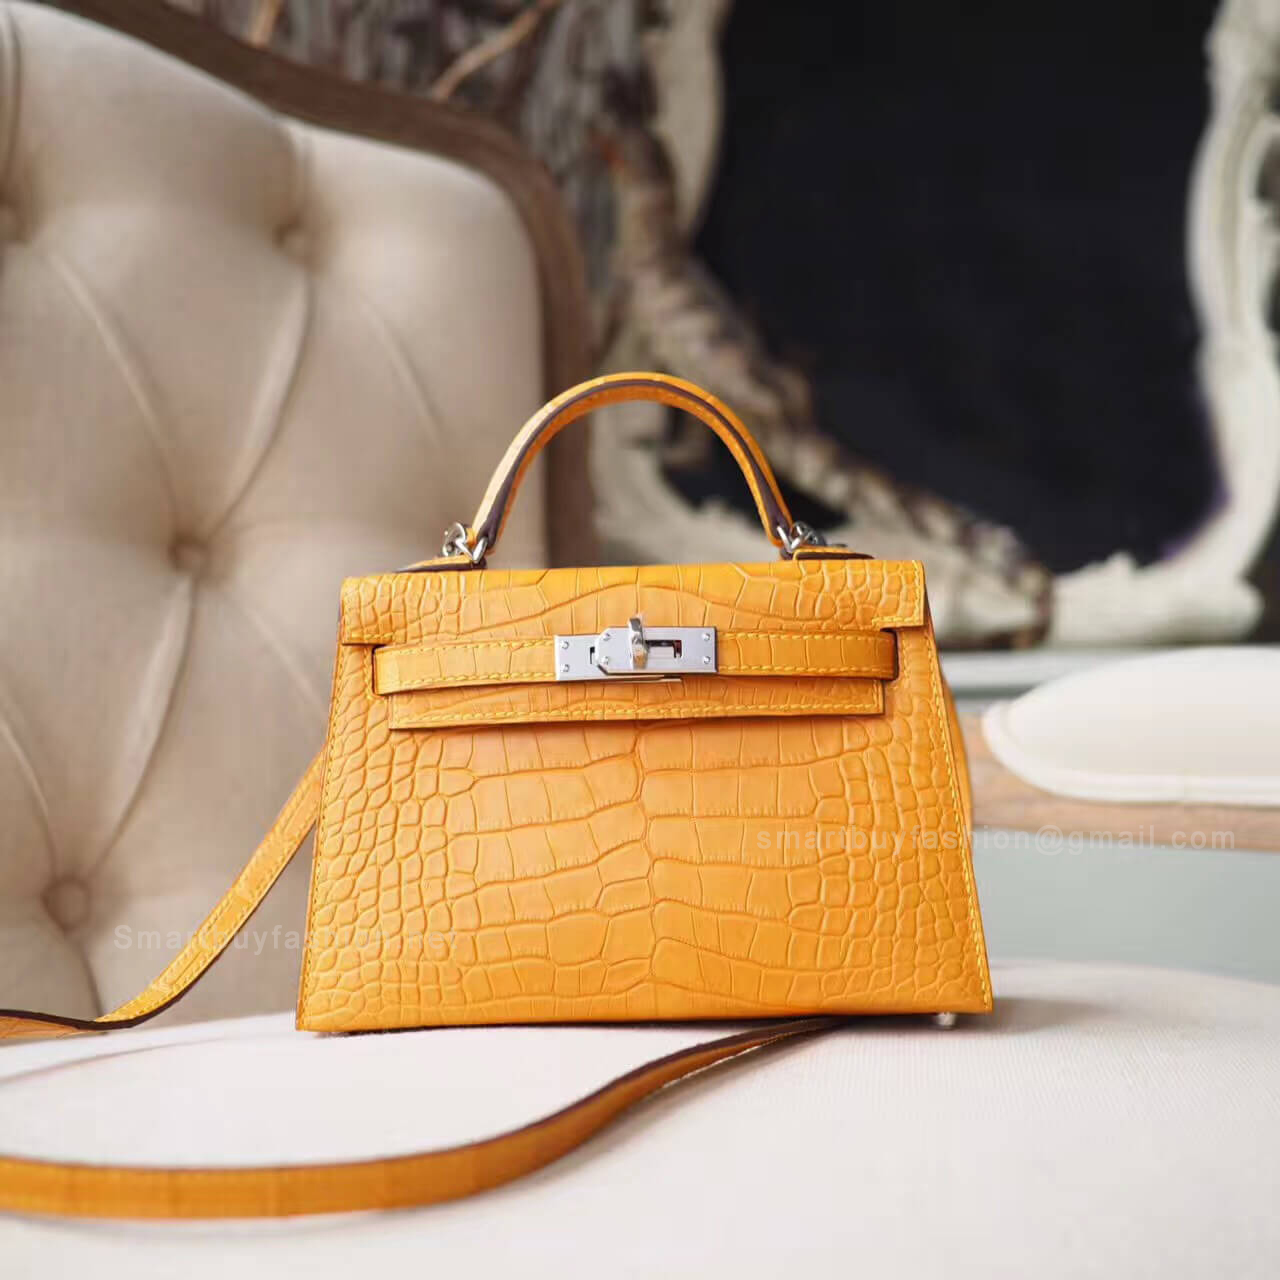 e827e2e836 Hermes Mini Kelly II Bag in 1a Mais Matte Alligator PHW